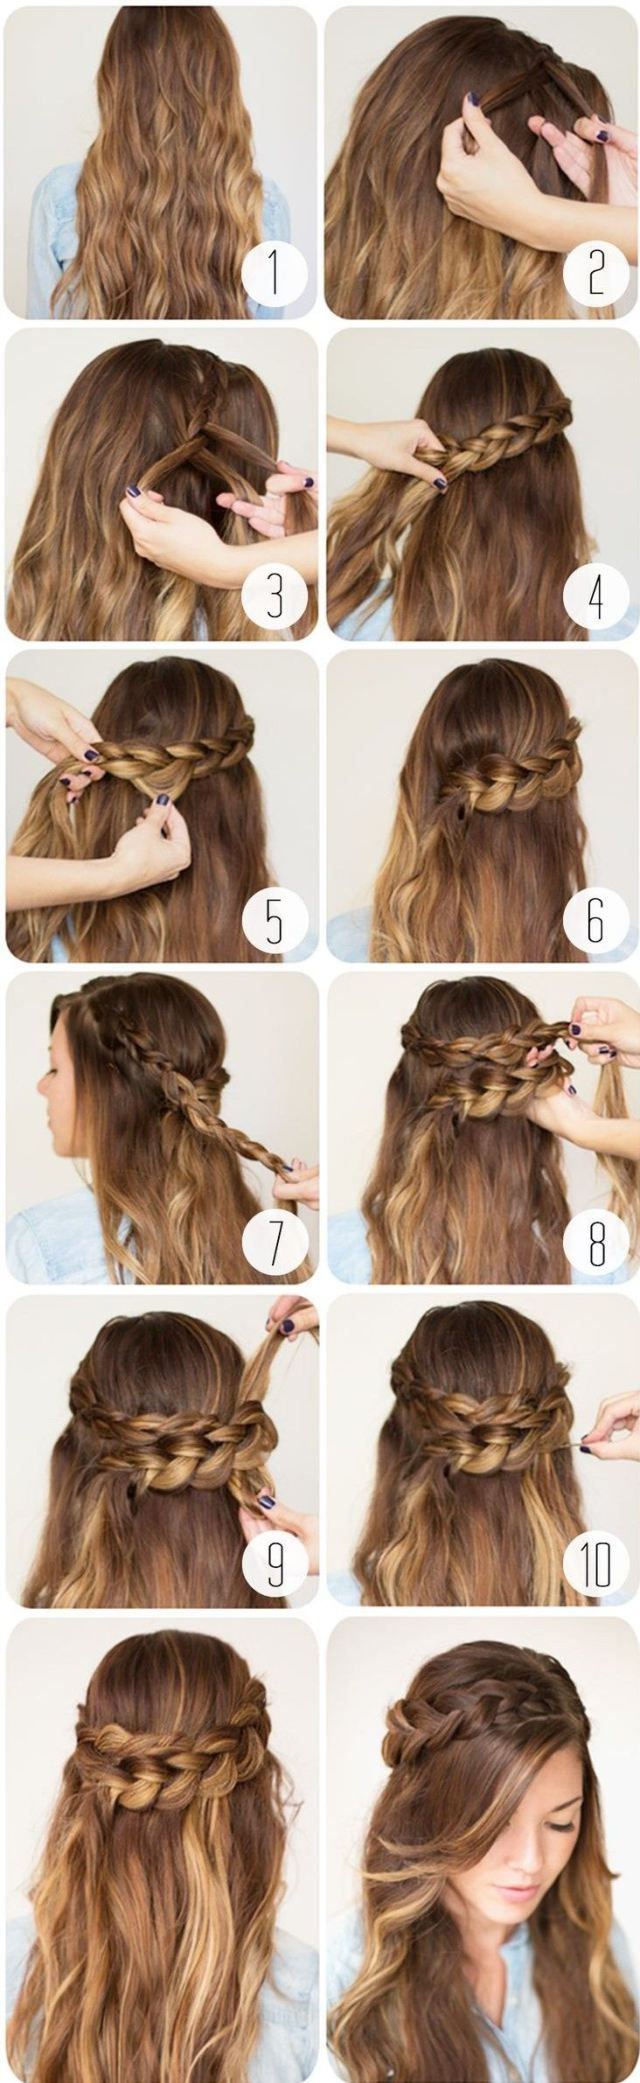 Wondrous 1000 Ideas About Easy Braided Hairstyles On Pinterest Types Of Hairstyle Inspiration Daily Dogsangcom